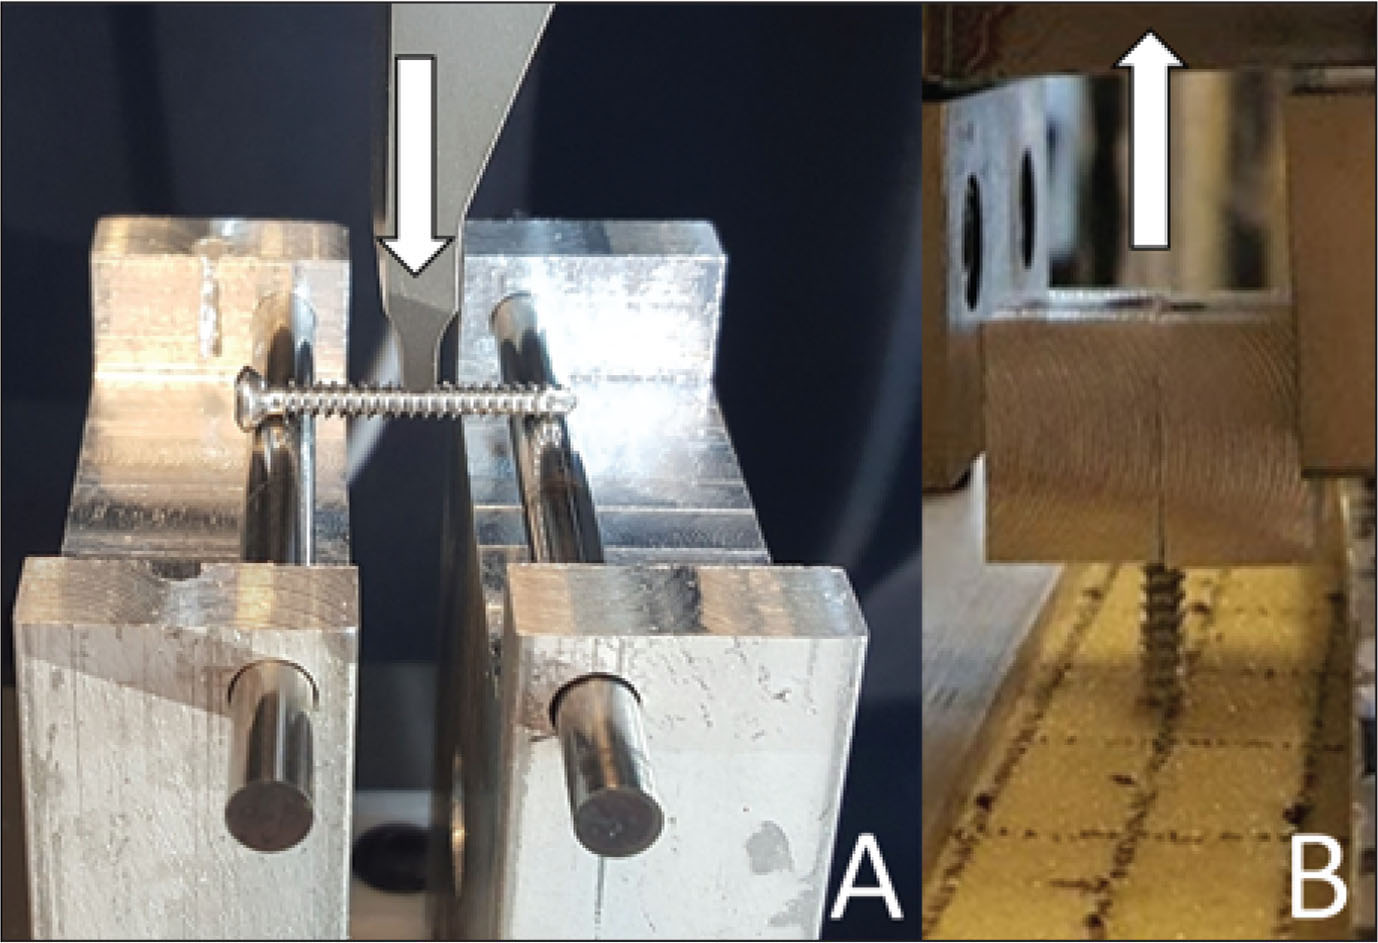 Photograph of the experimental setup used for the 3-point bending of screws. The actuator moved in the direction of the arrow at a constant rate to create a bending moment (A). Photograph of the experimental setup used for the pull-out test. Grips clamp a custom-made fixture around the neck of the screw head and pull in the direction of the arrow at a constant velocity (B). Fully threaded solid cortical screws are being tested in both photographs.